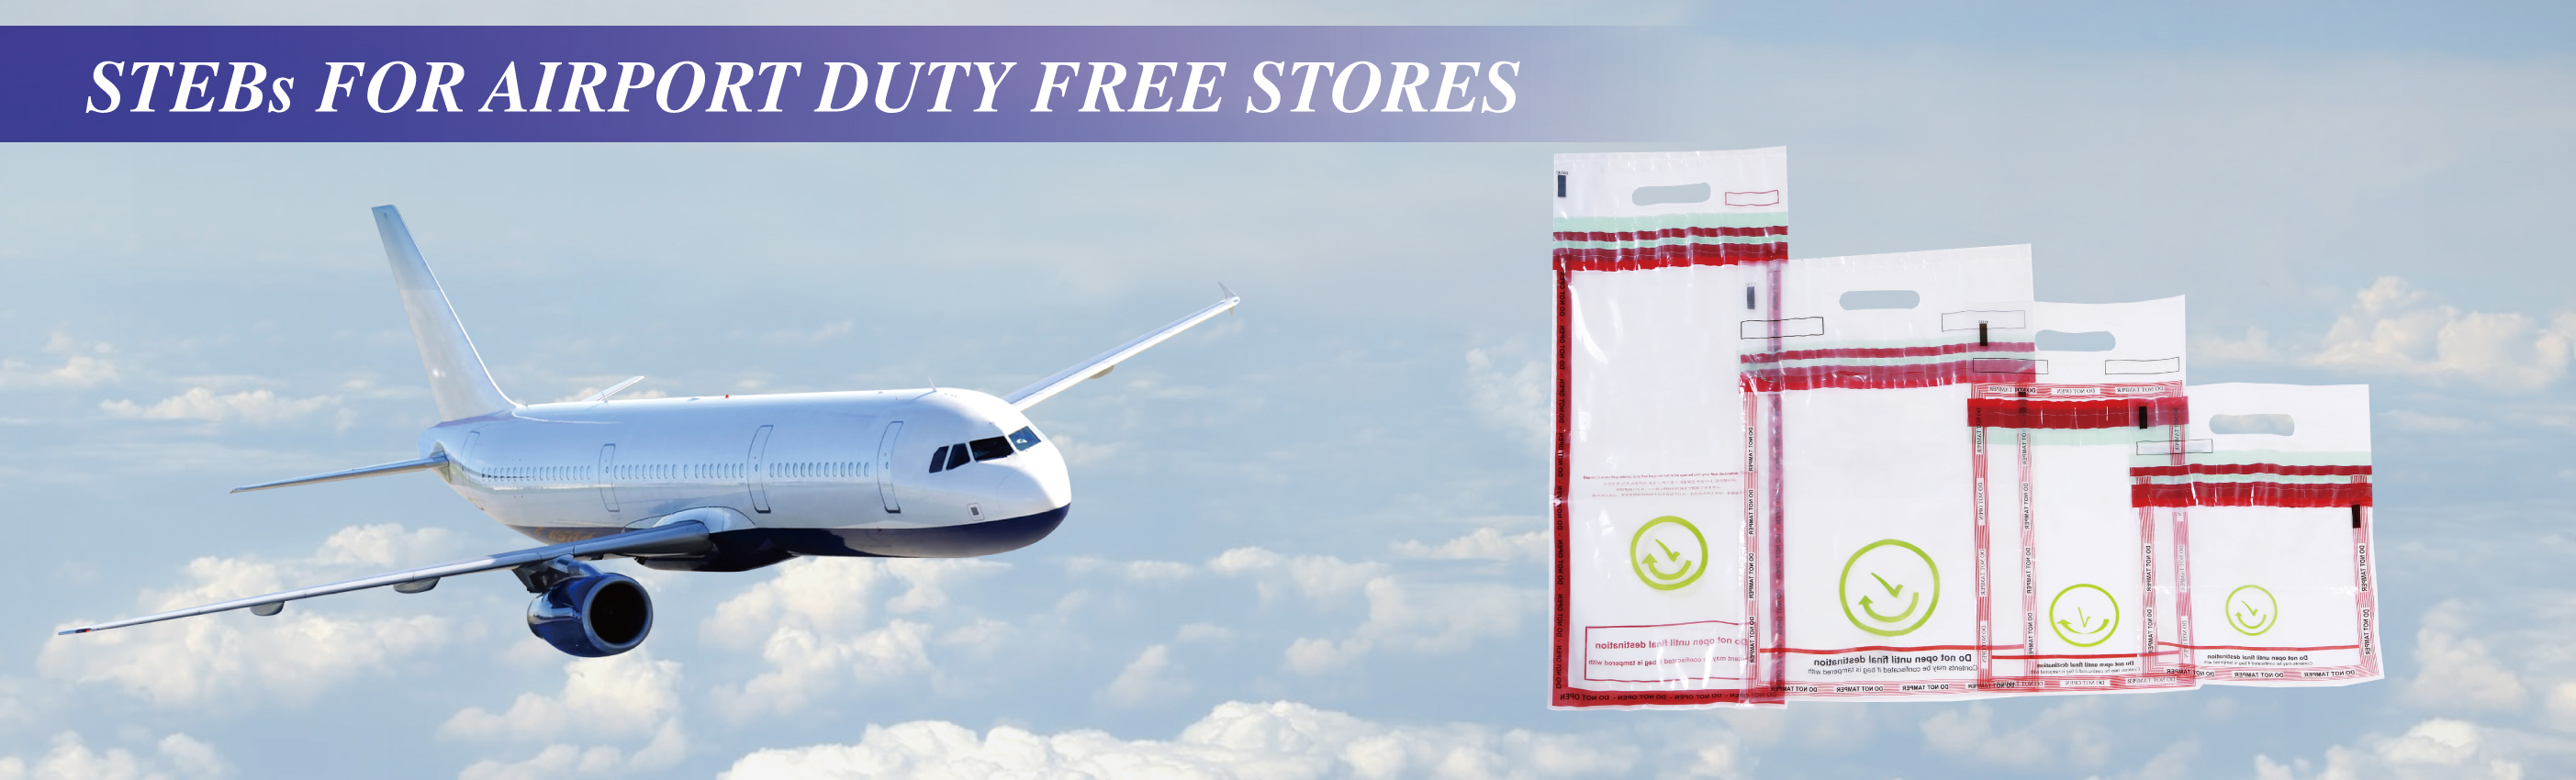 STEBs-for-Airport-Duty-Free-Stores